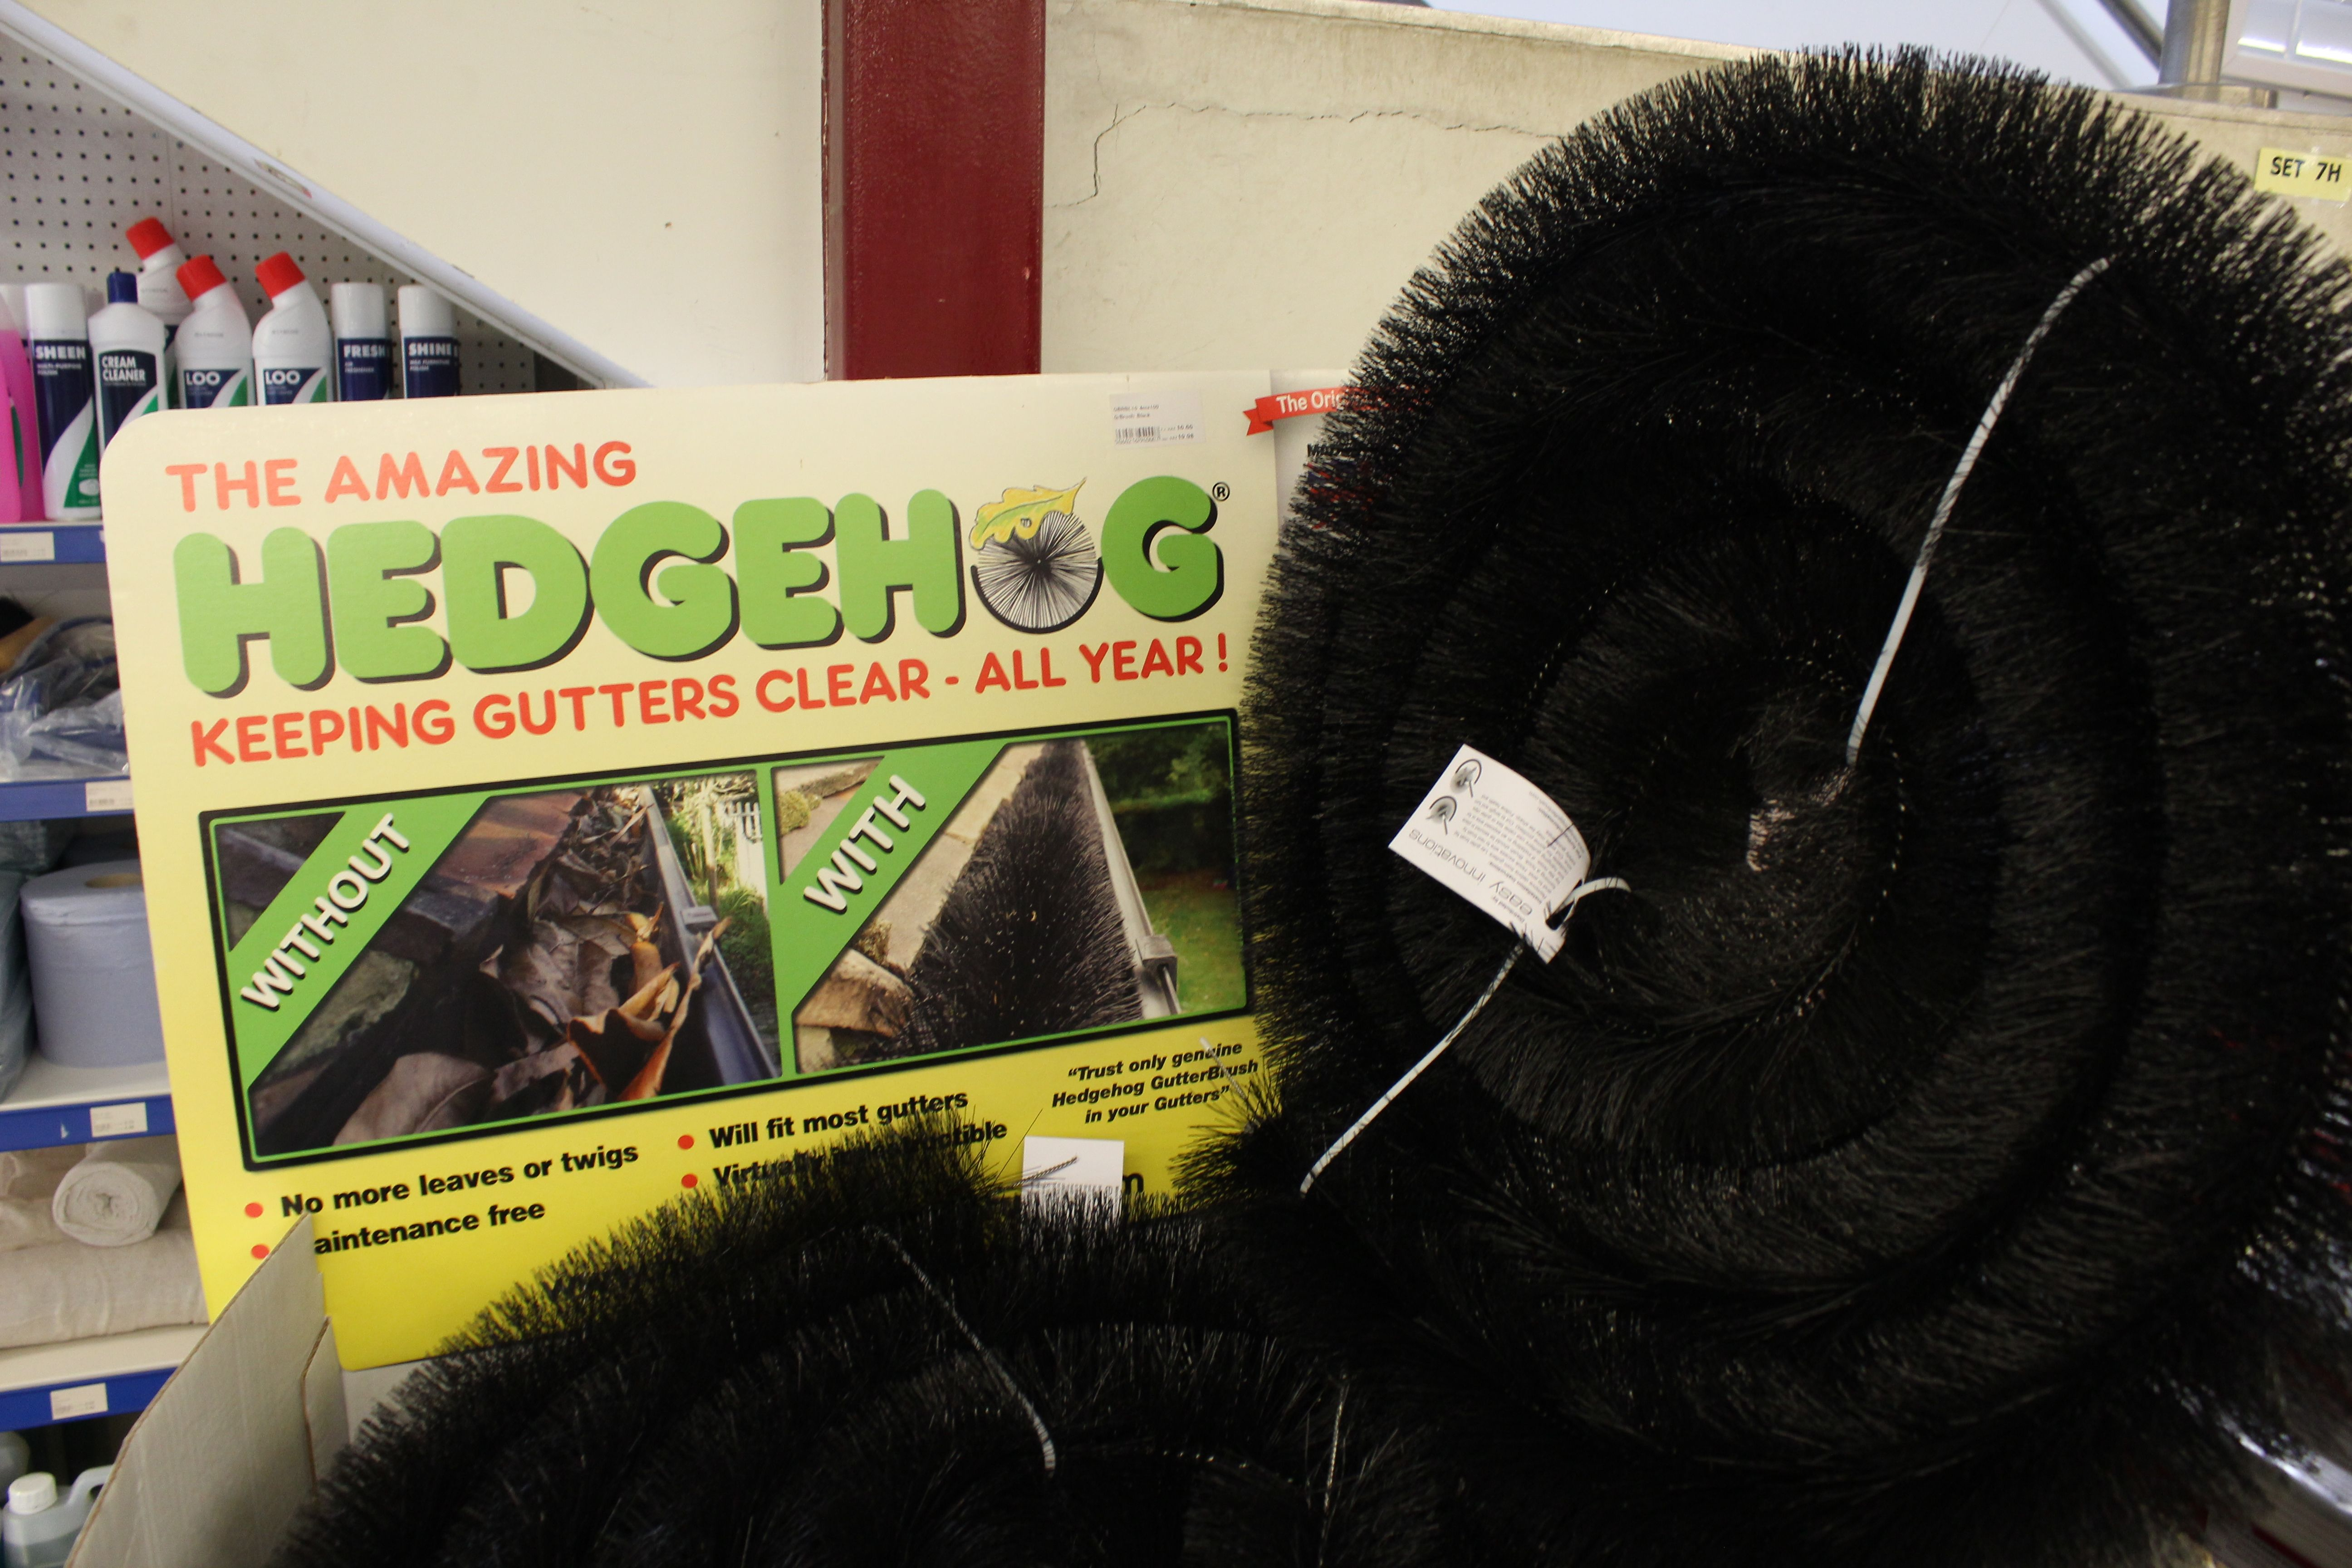 The amazing Hedgehog keeps gutters clean all year! Available in store at Henlow Building Supplies on Stratton Business Park in Biggleswade.